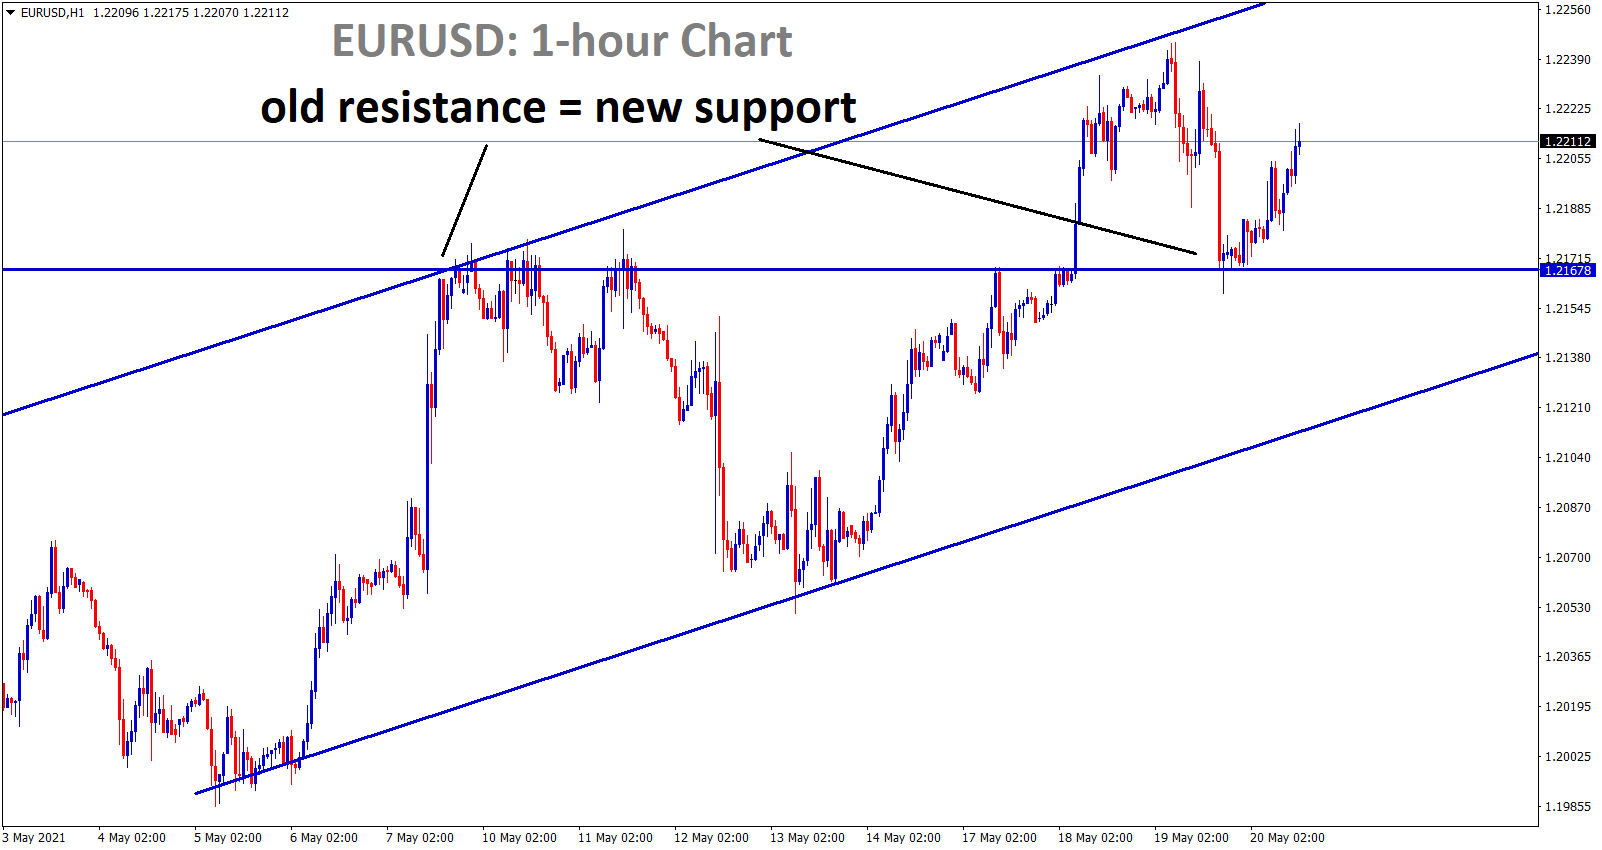 EURUSD bounces back after hitting the old resistance level.